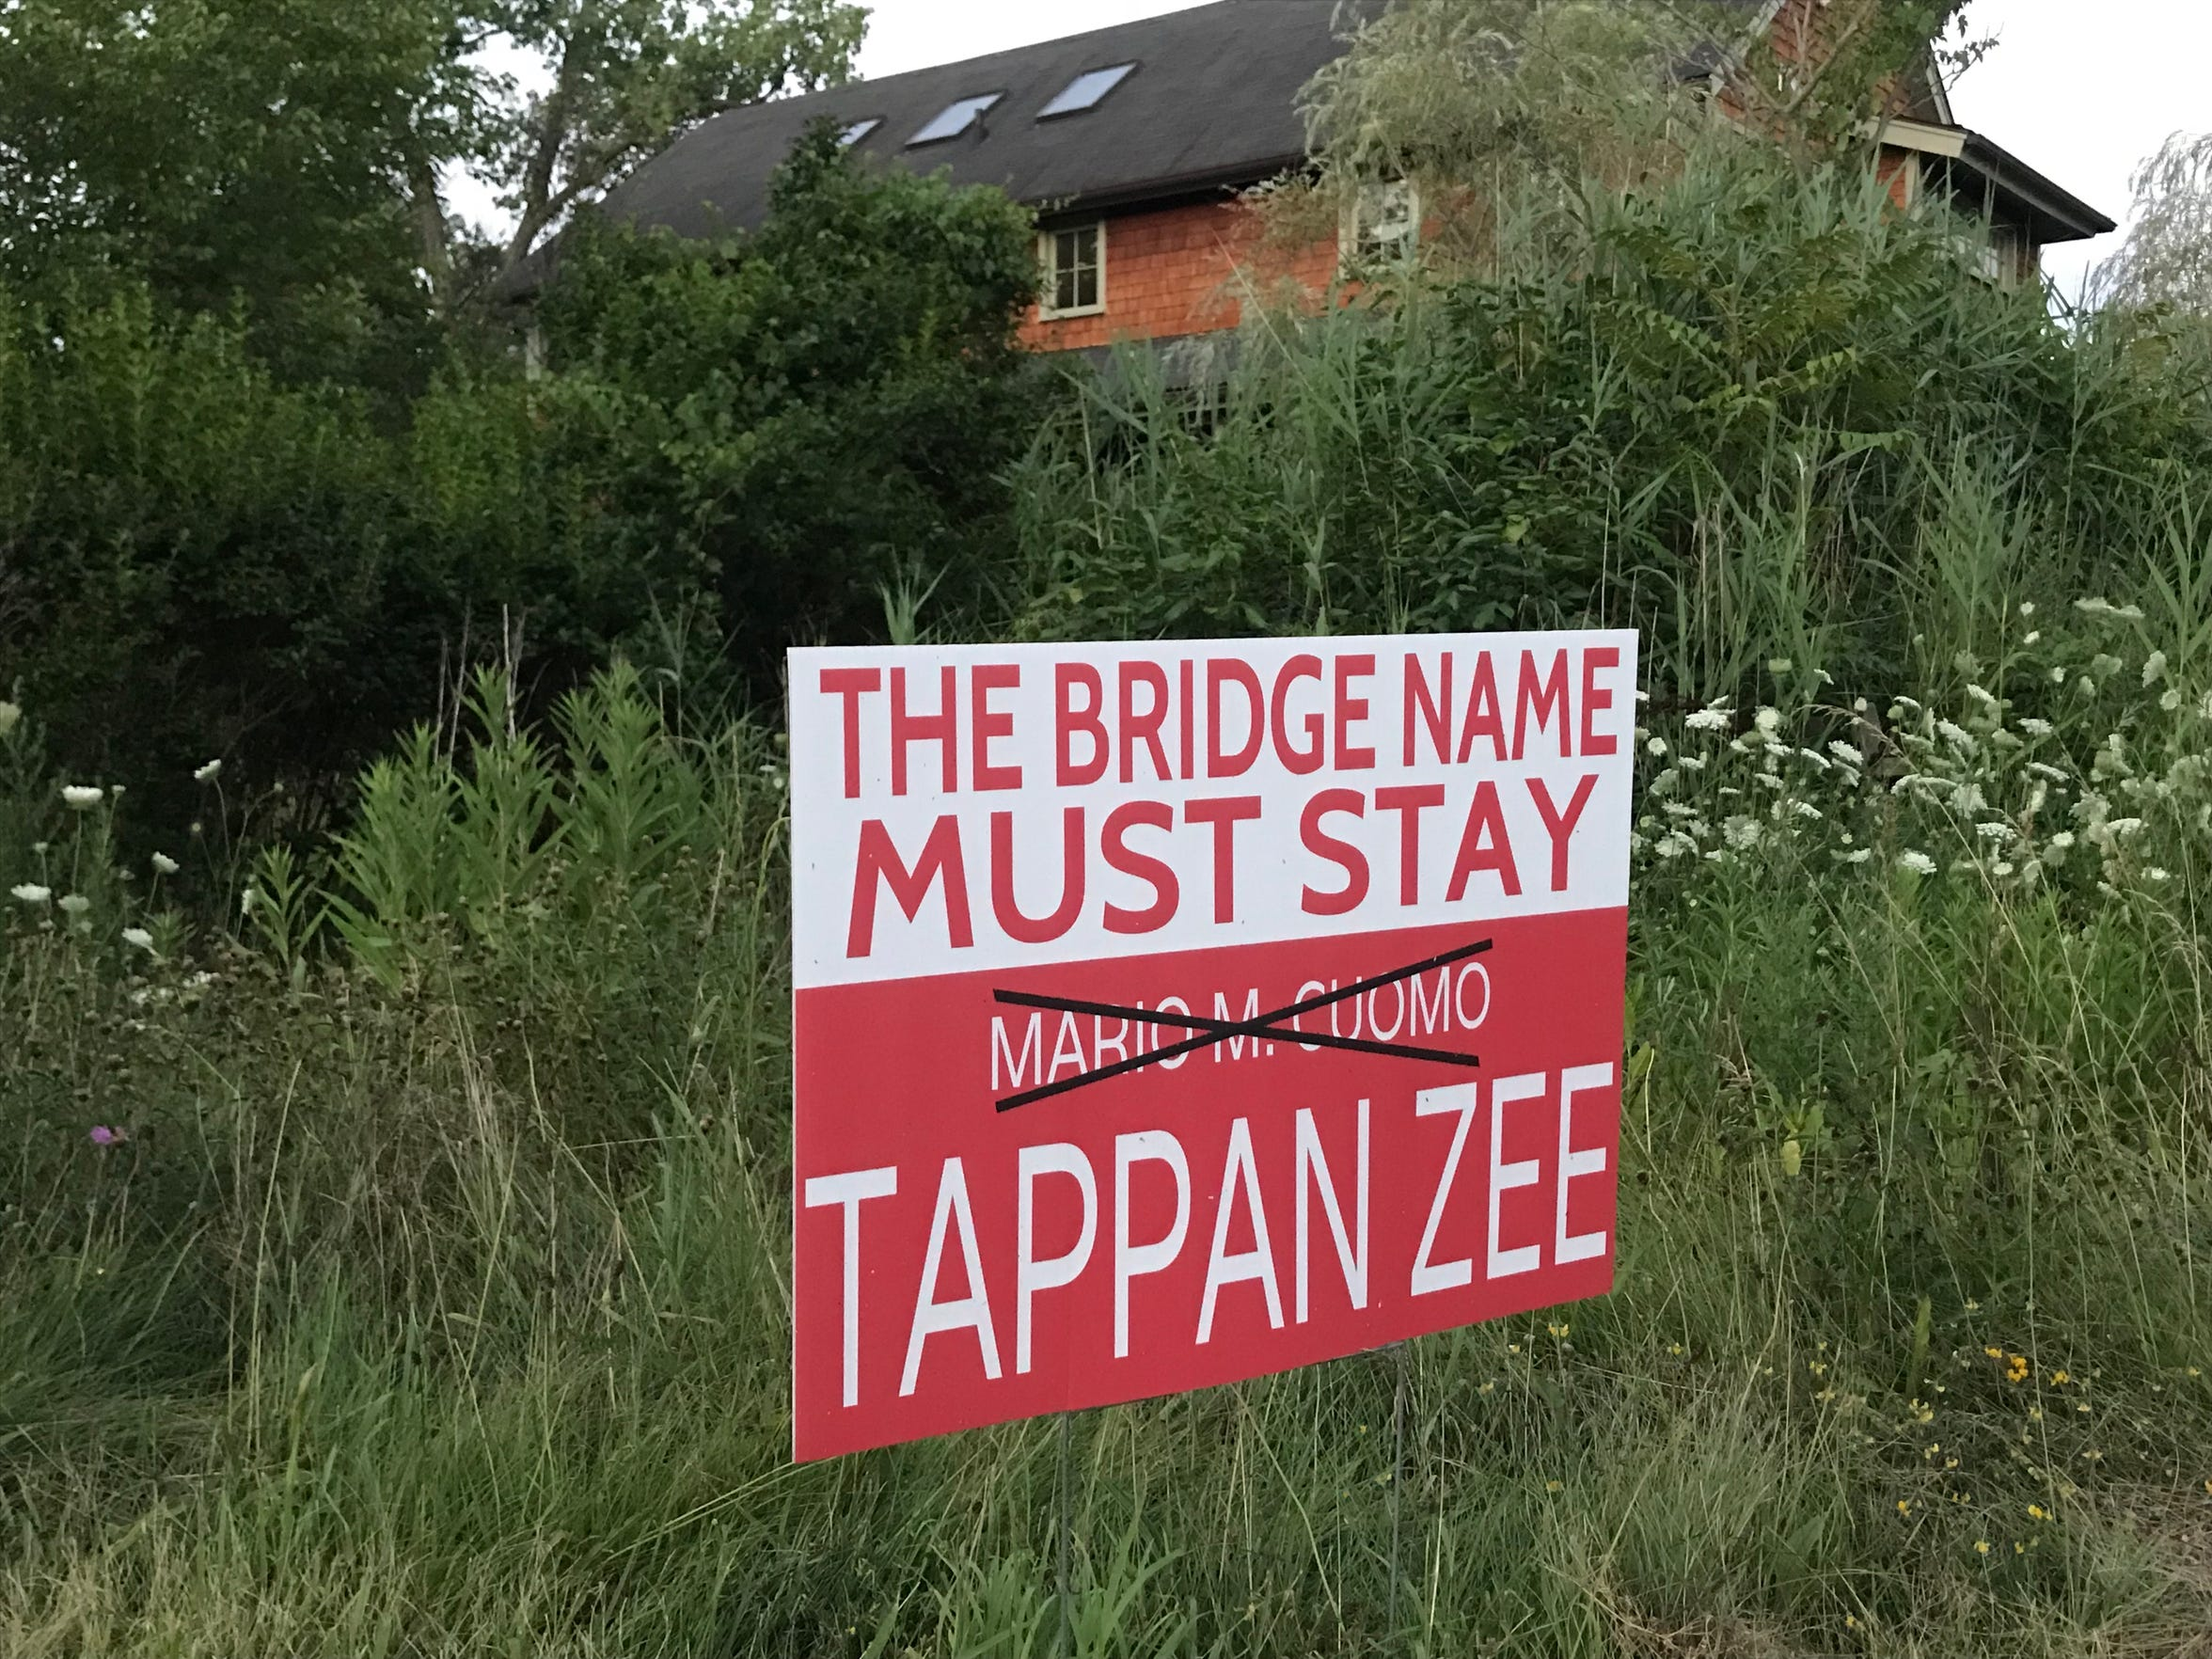 A sign protesting name change of the new bridge in Piermont.